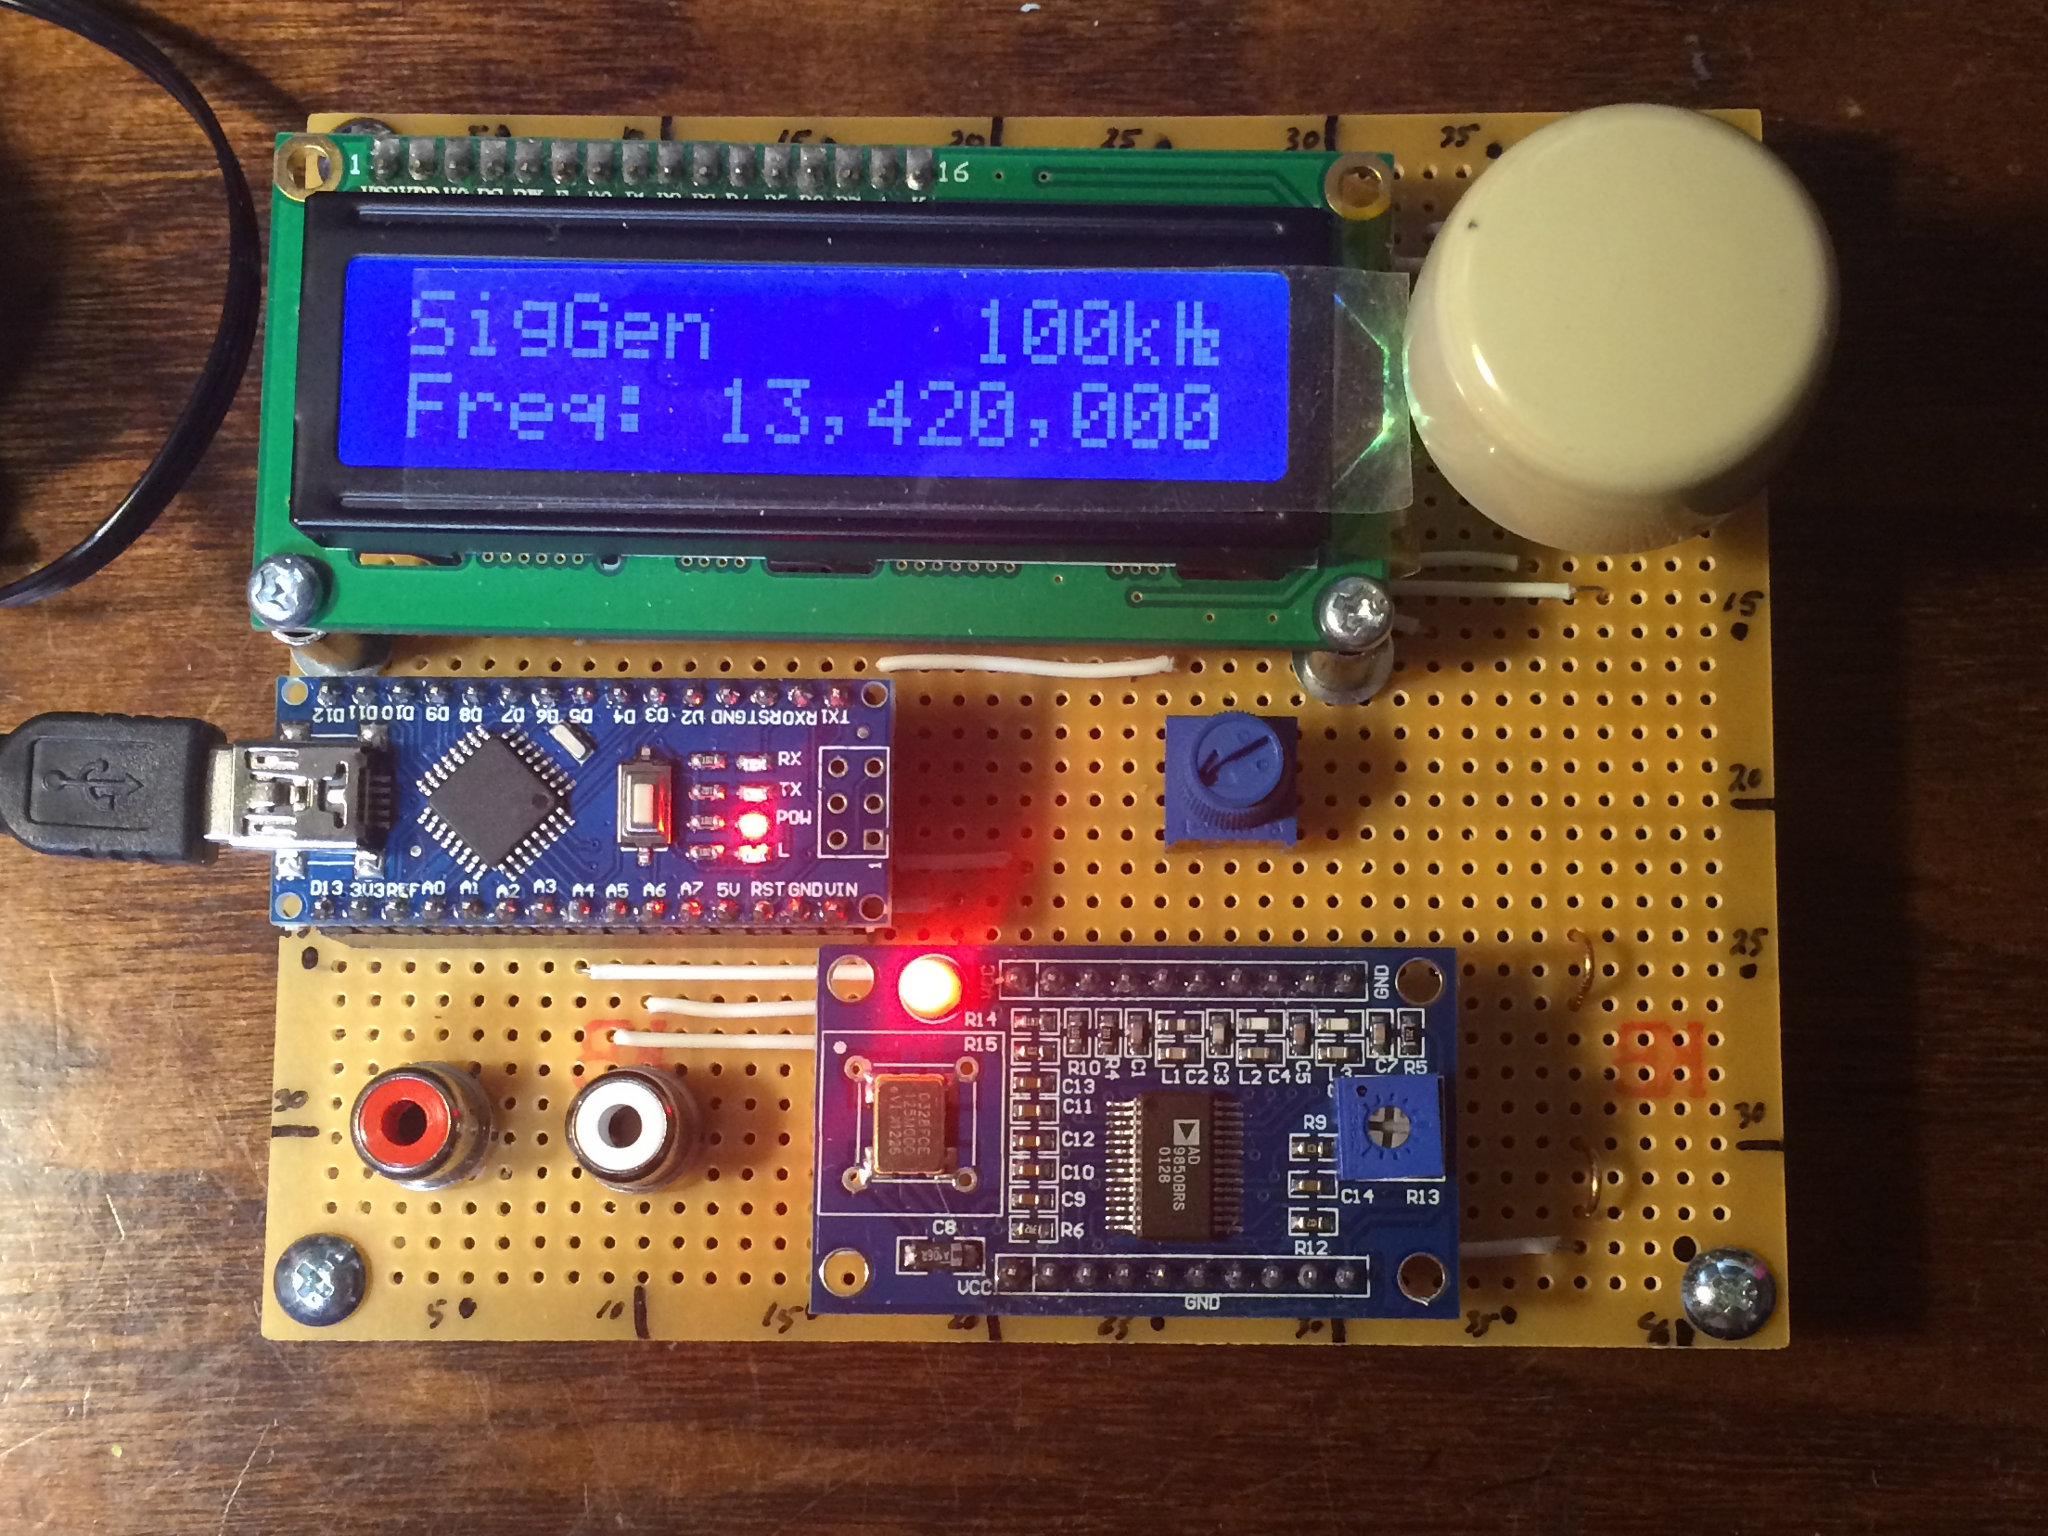 Ad9850 Based Signal Generator At How To Build A Rotary Encoder Circuit With An Arduino On The Dds Module And Lcd Display